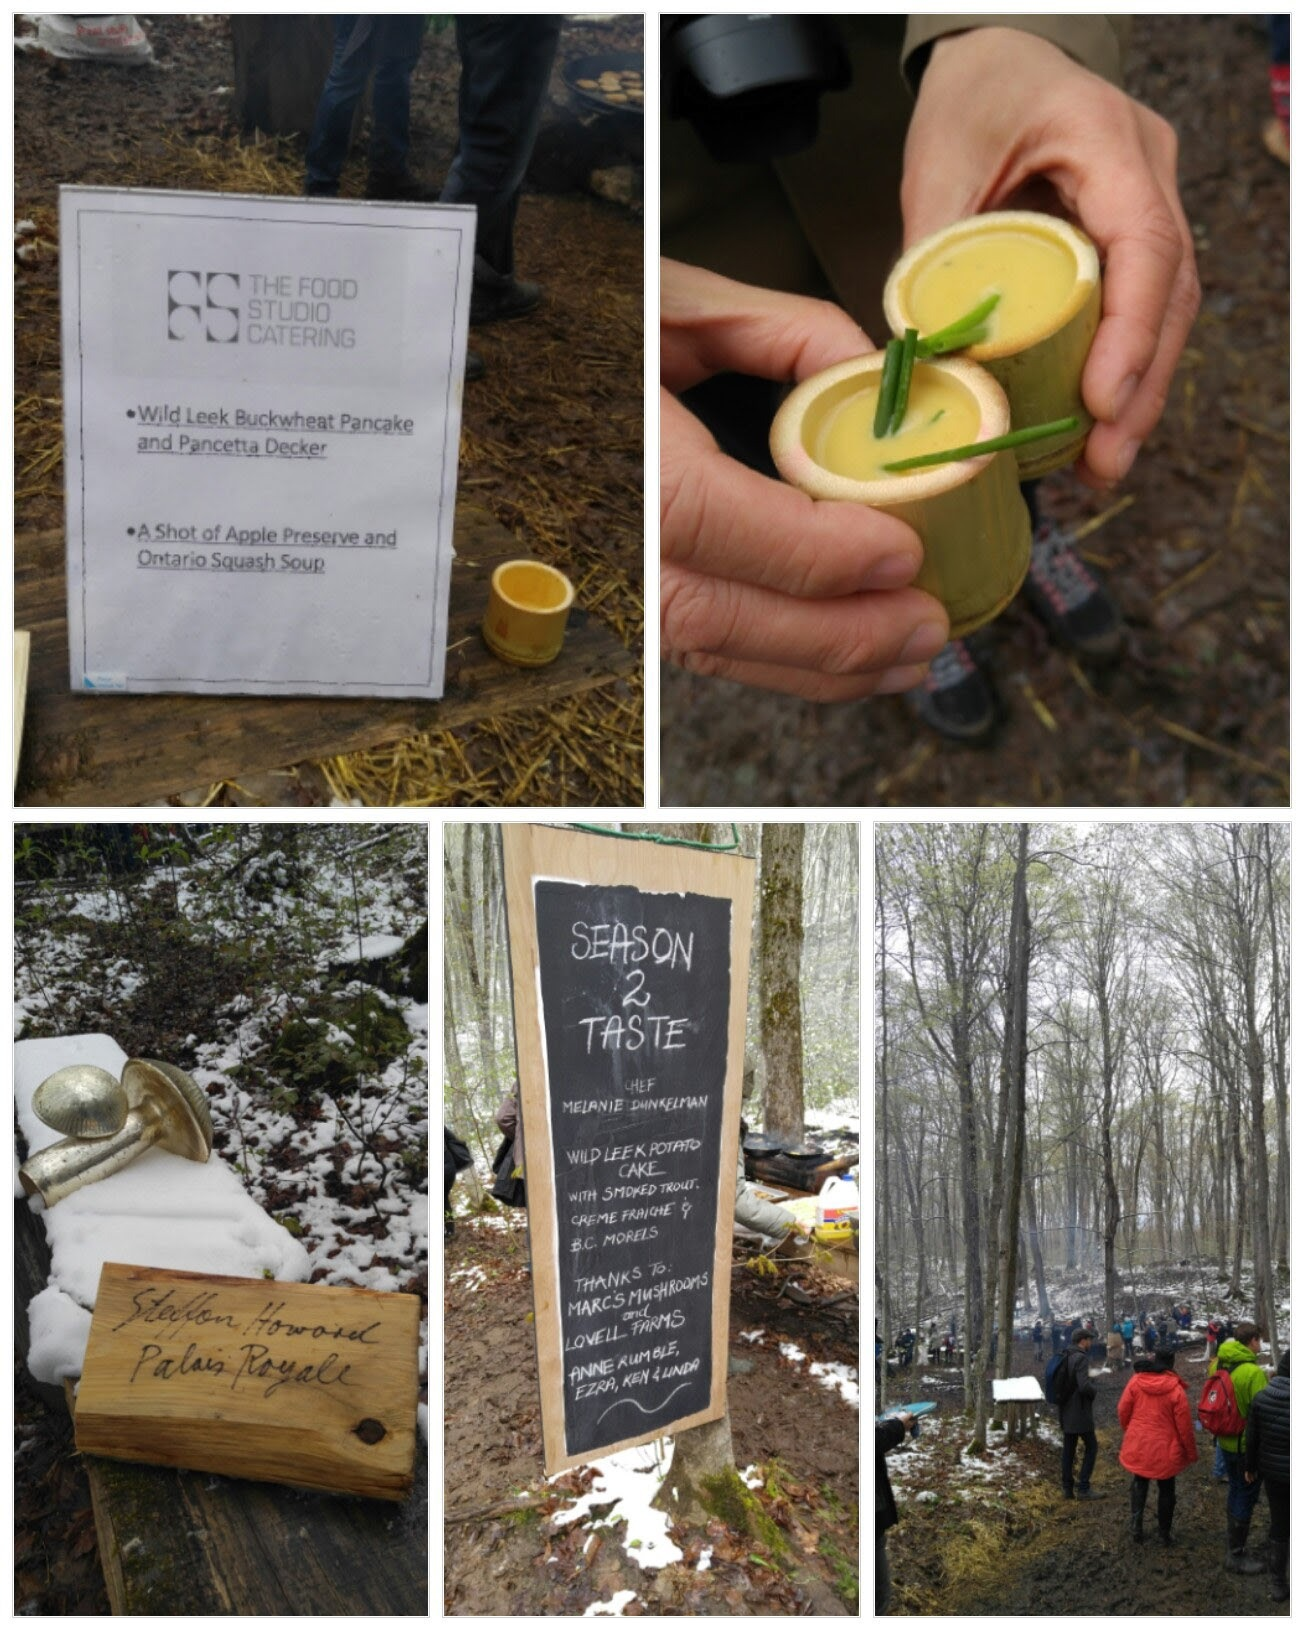 Wild Leek and Maple Syrup Festival at Eigensinn Farm